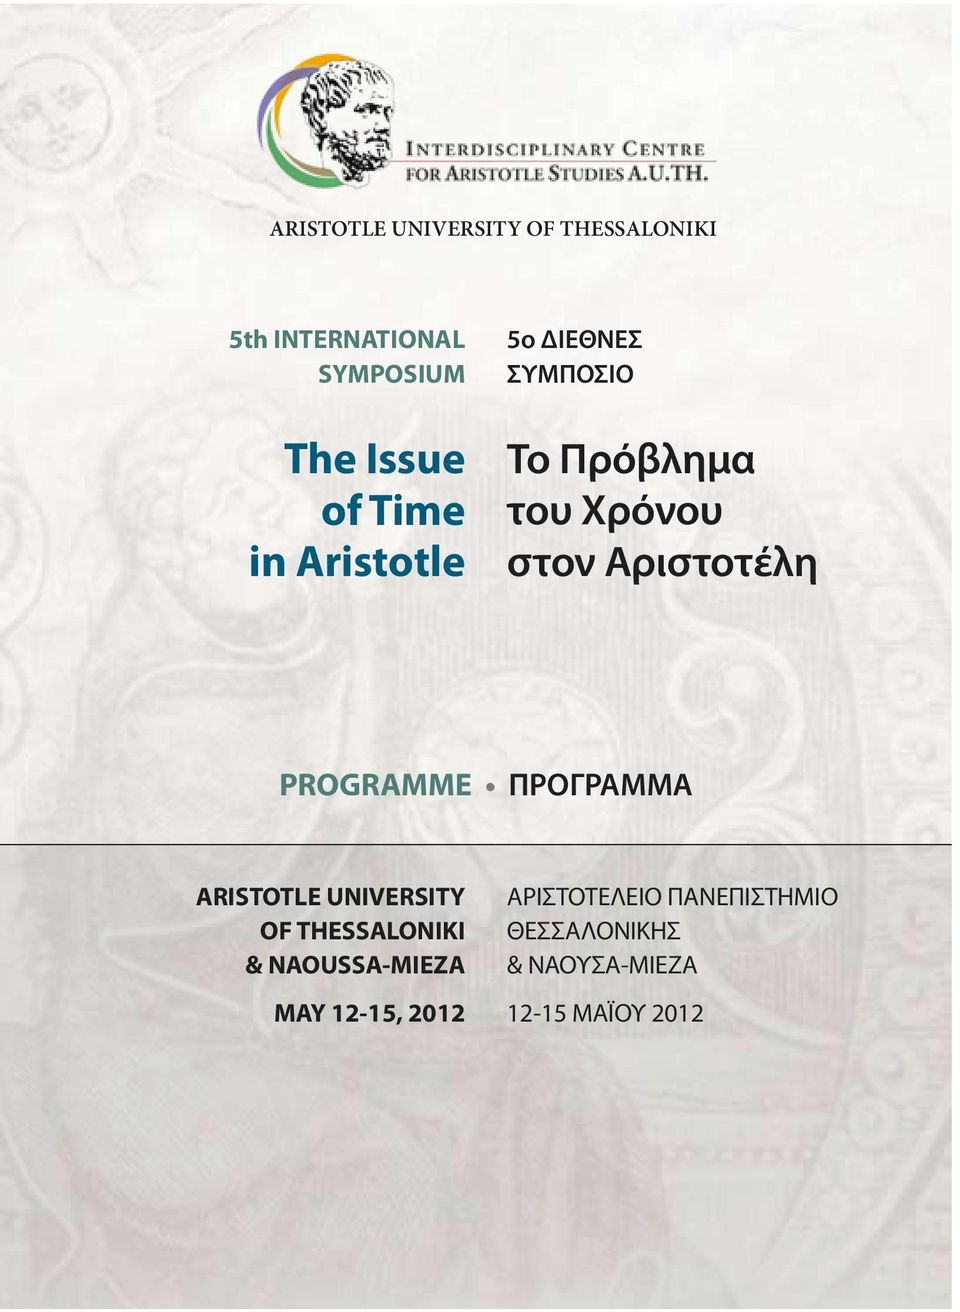 PROGRAMME ΠΡΟΓΡΑΜΜΑ ARISTOTLE UNIVERSITY OF THESSALONIKI & NAOUSSA-MIEZA MAY